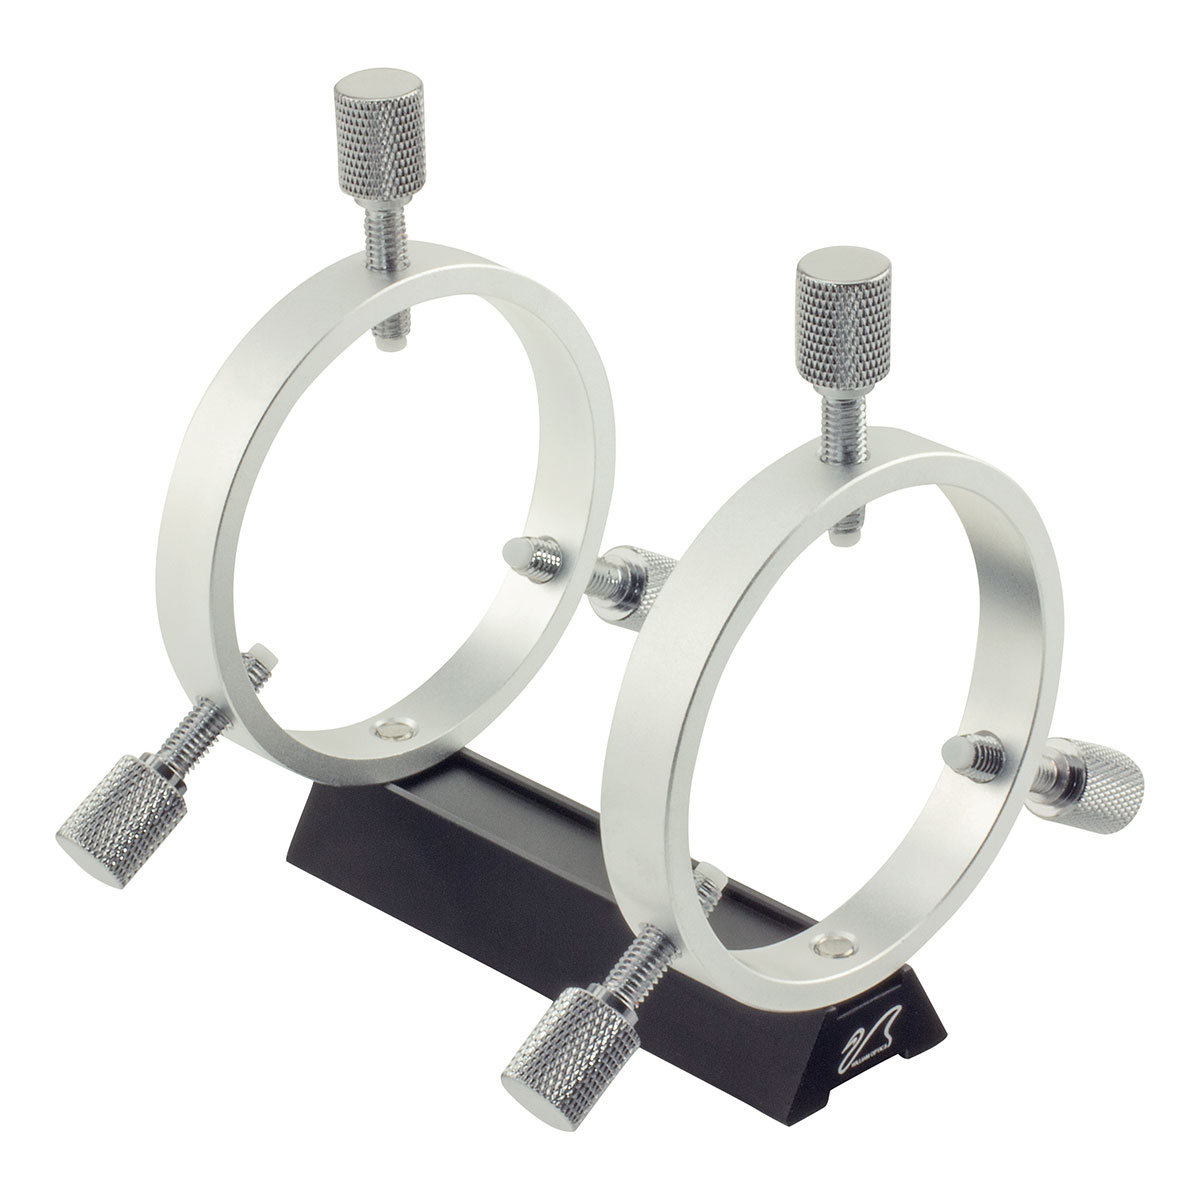 William Optics Slide-Base 50mm Guiding Rings (adjustable)